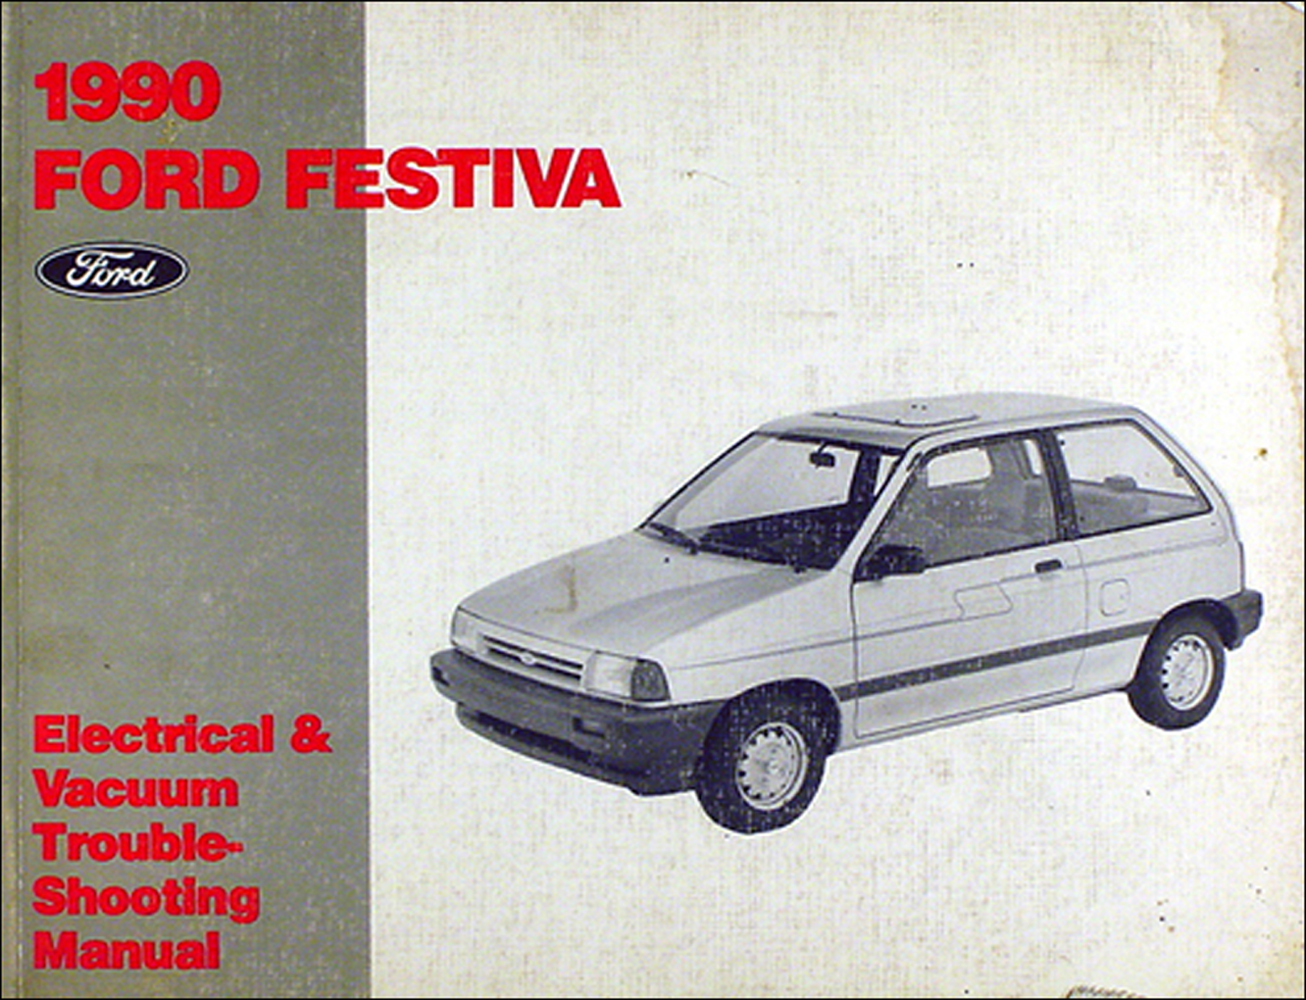 1990 Ford Festiva Original Electrical & Vacuum Troubleshooting Manual